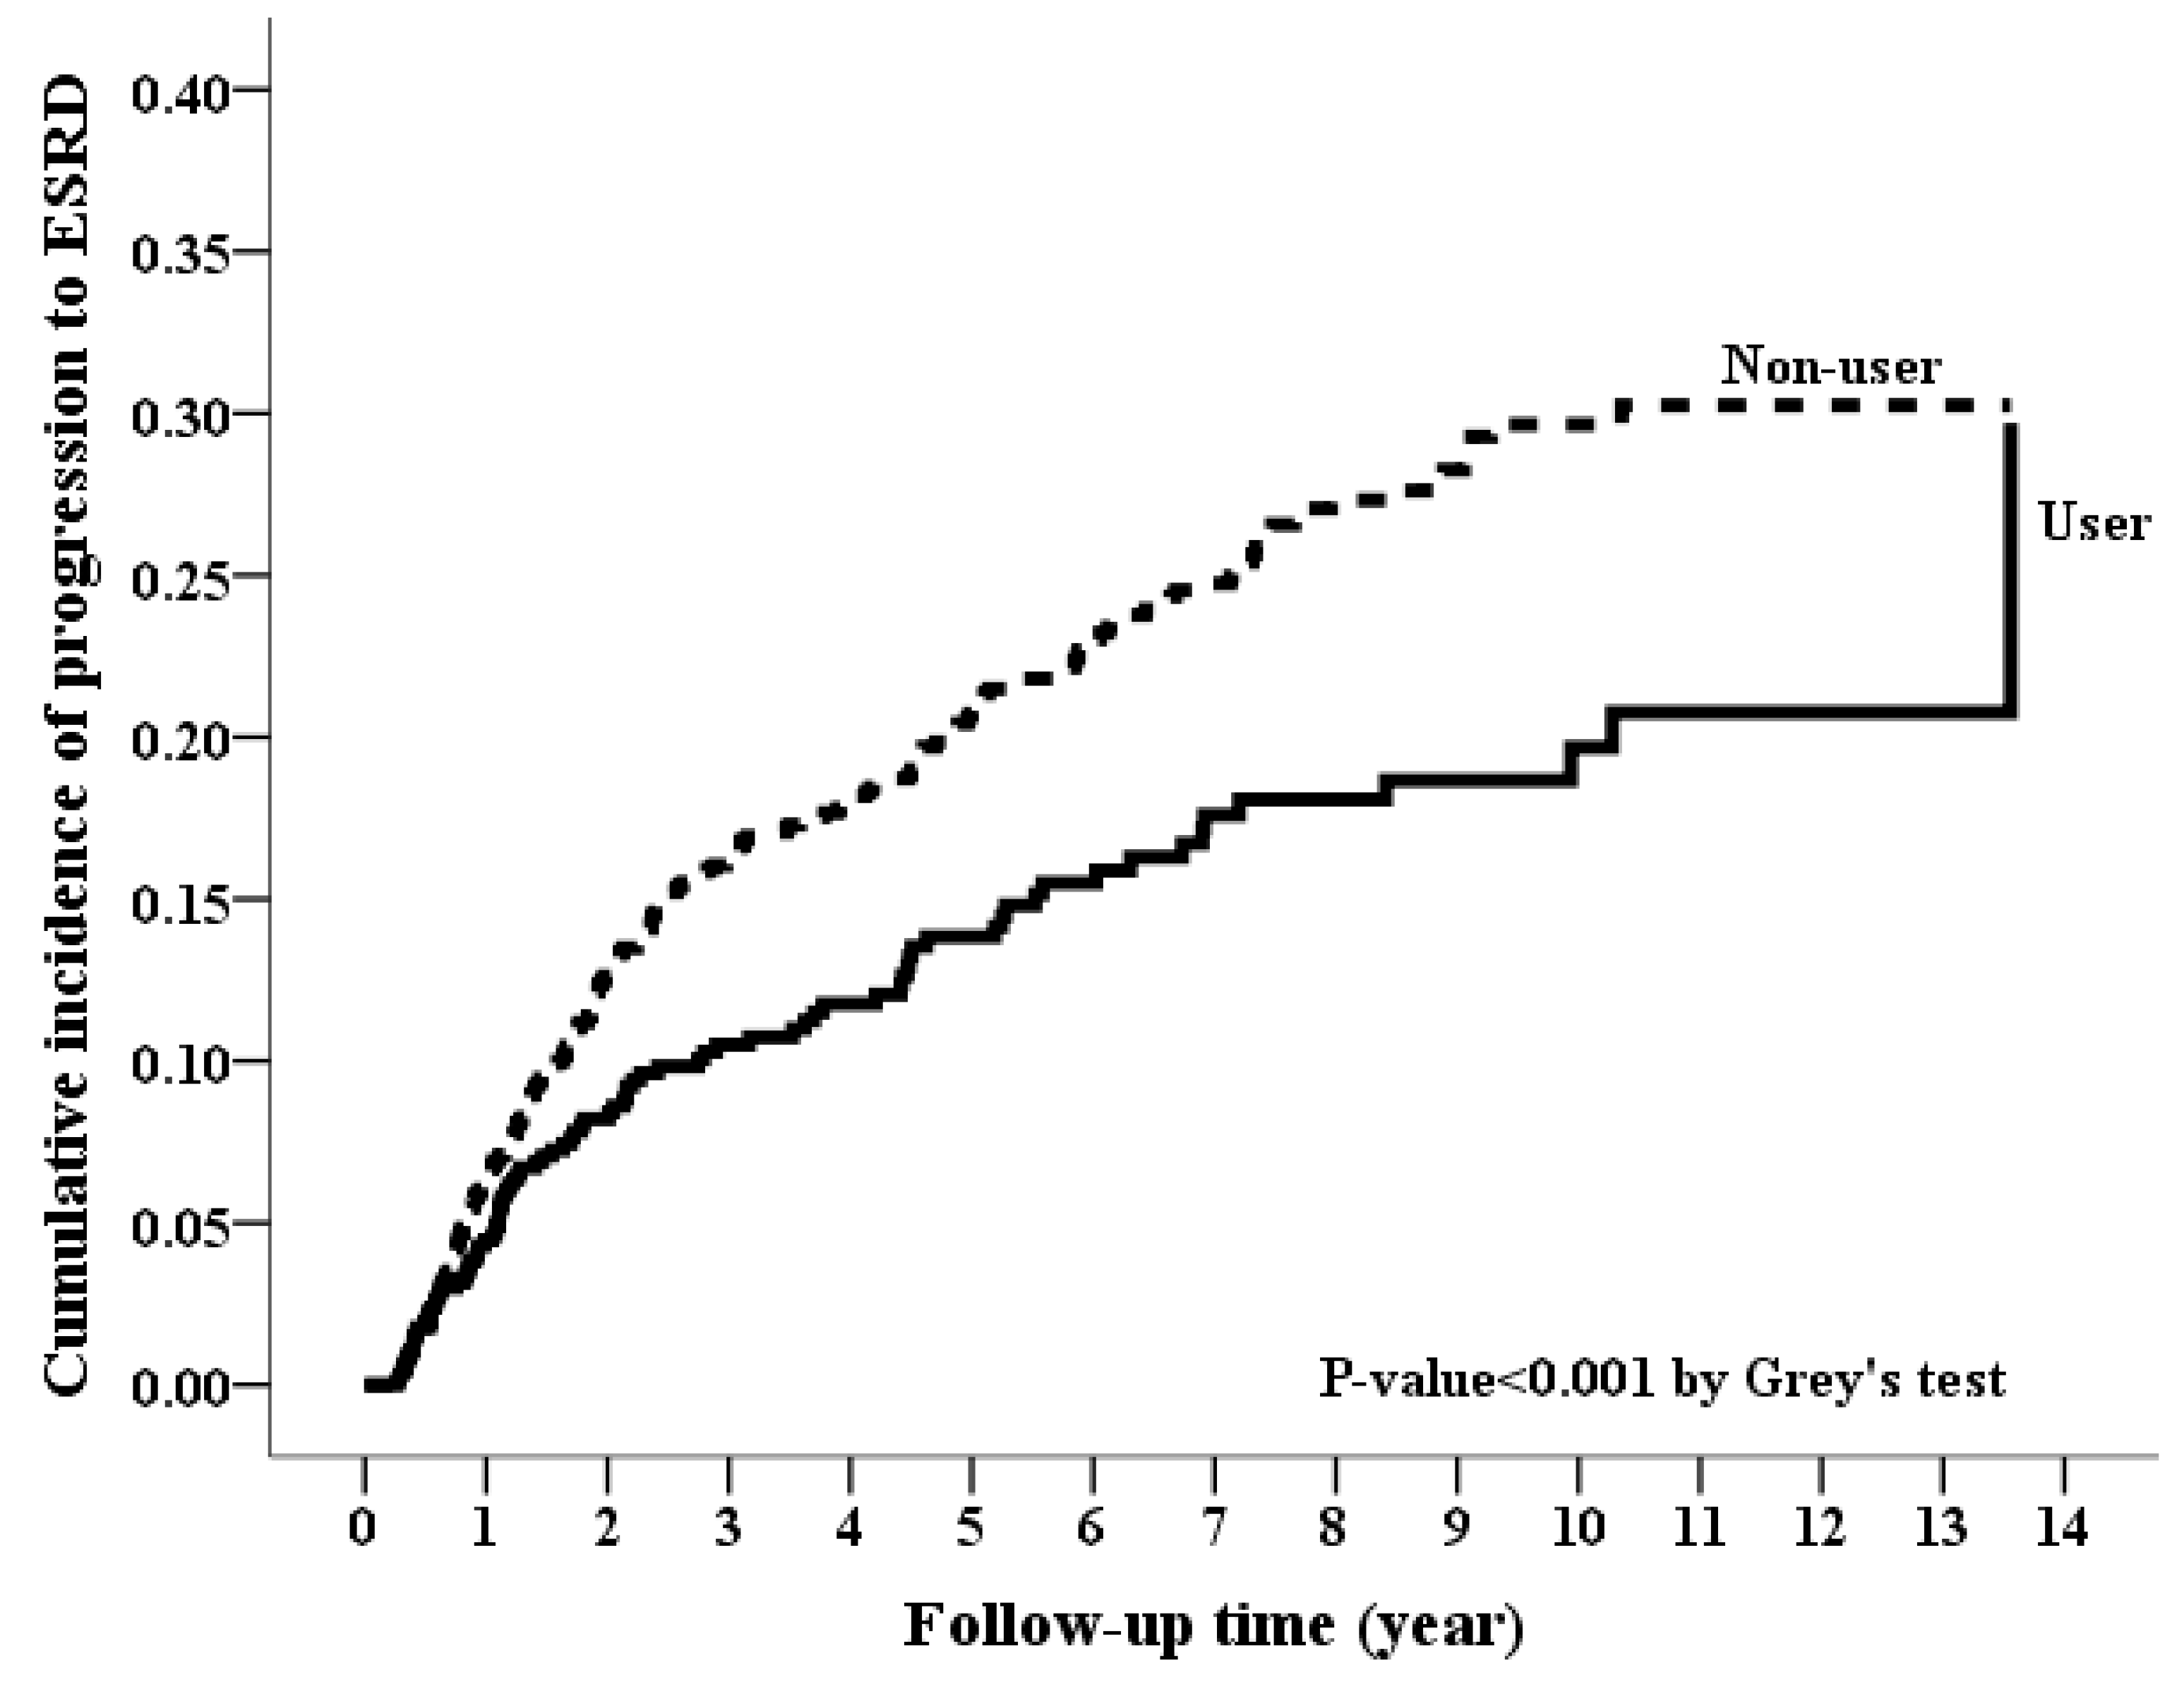 Jcm Free Full Text Long Term Effects Of Spironolactone On Kidney Function And Hyperkalemia Associated Hospitalization In Patients With Chronic Kidney Disease Html